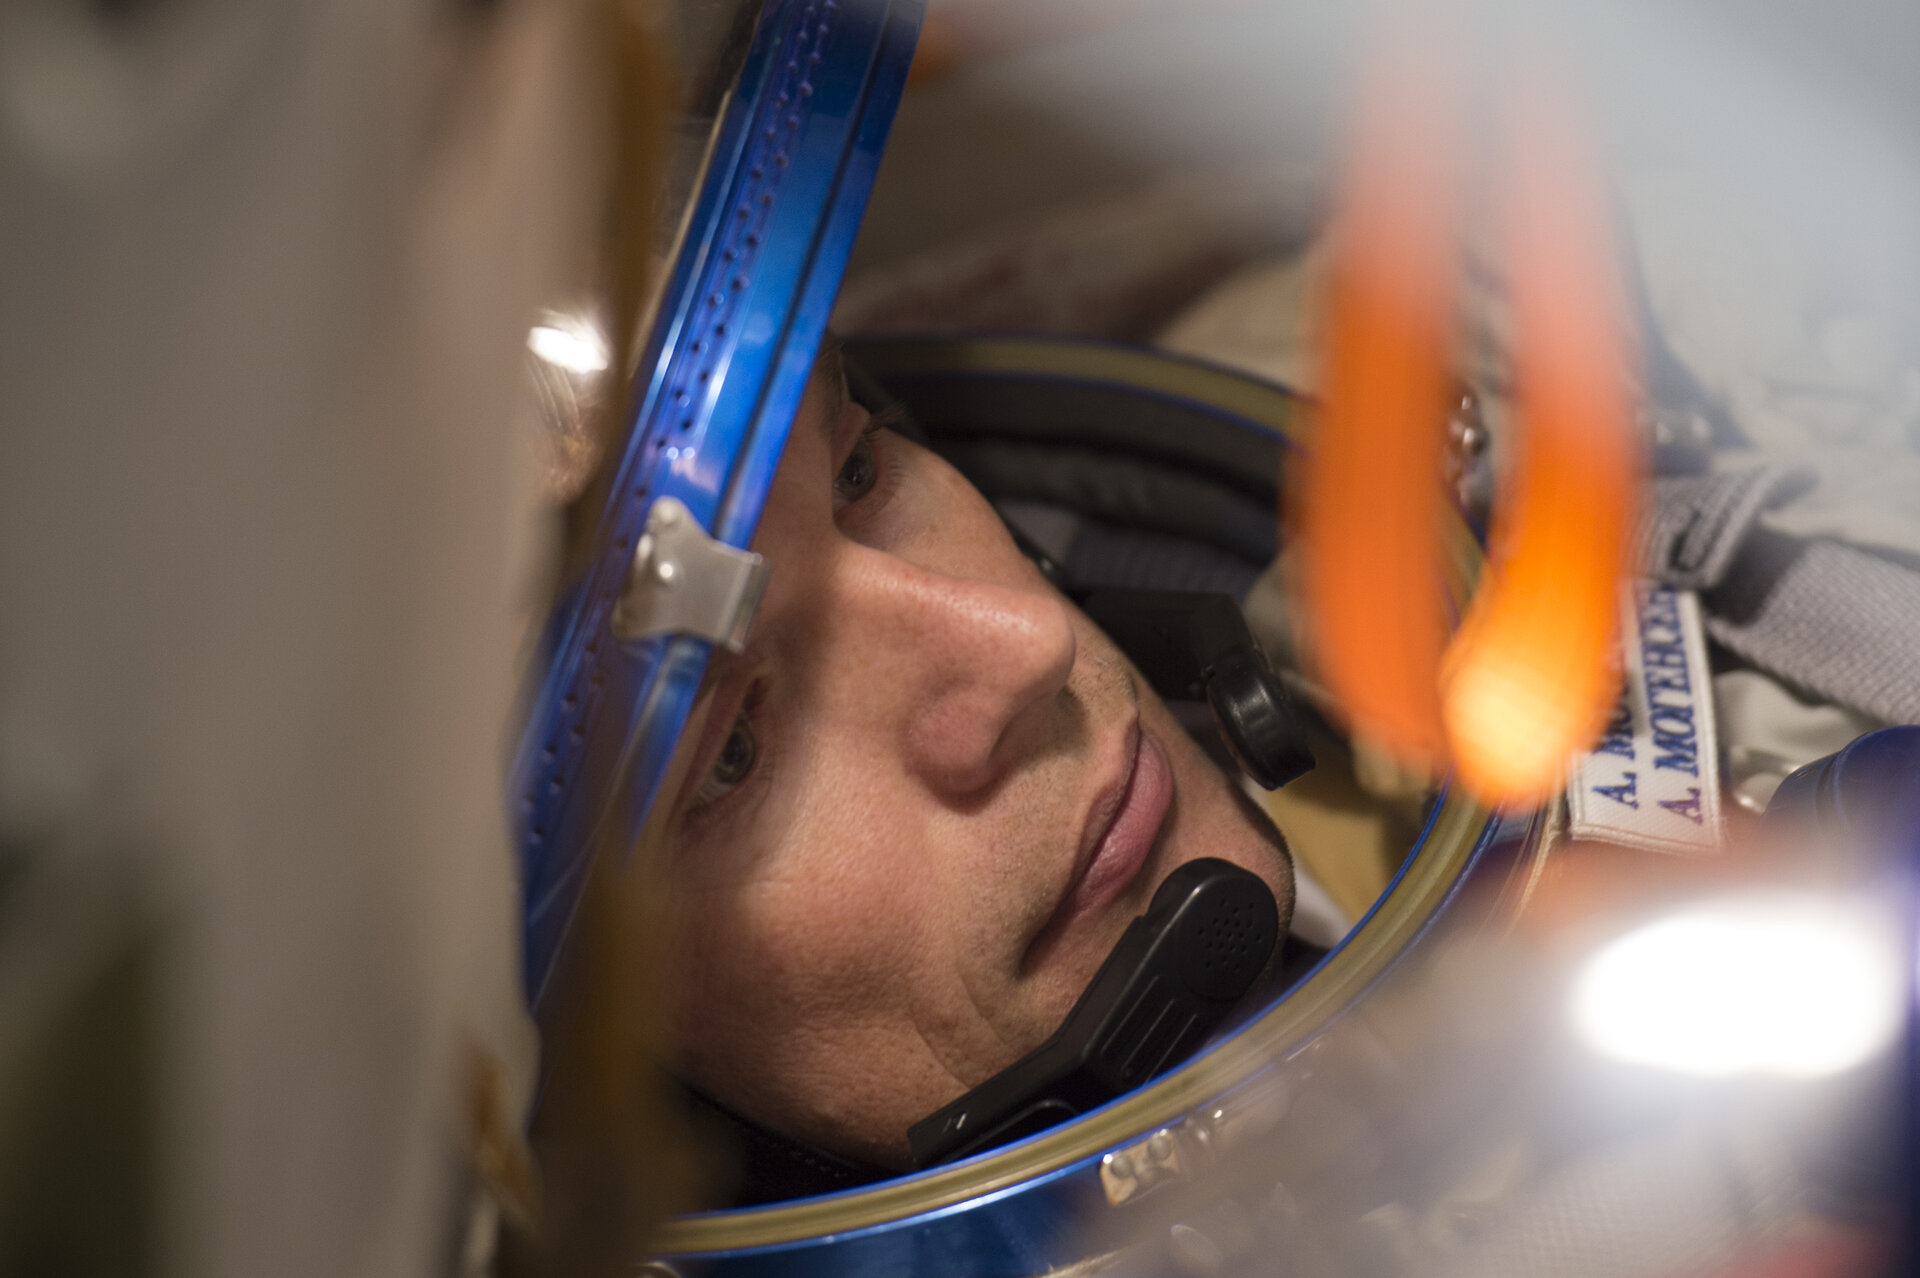 Andreas during a simulation inside the full-scale mockup of the Soyuz capsule